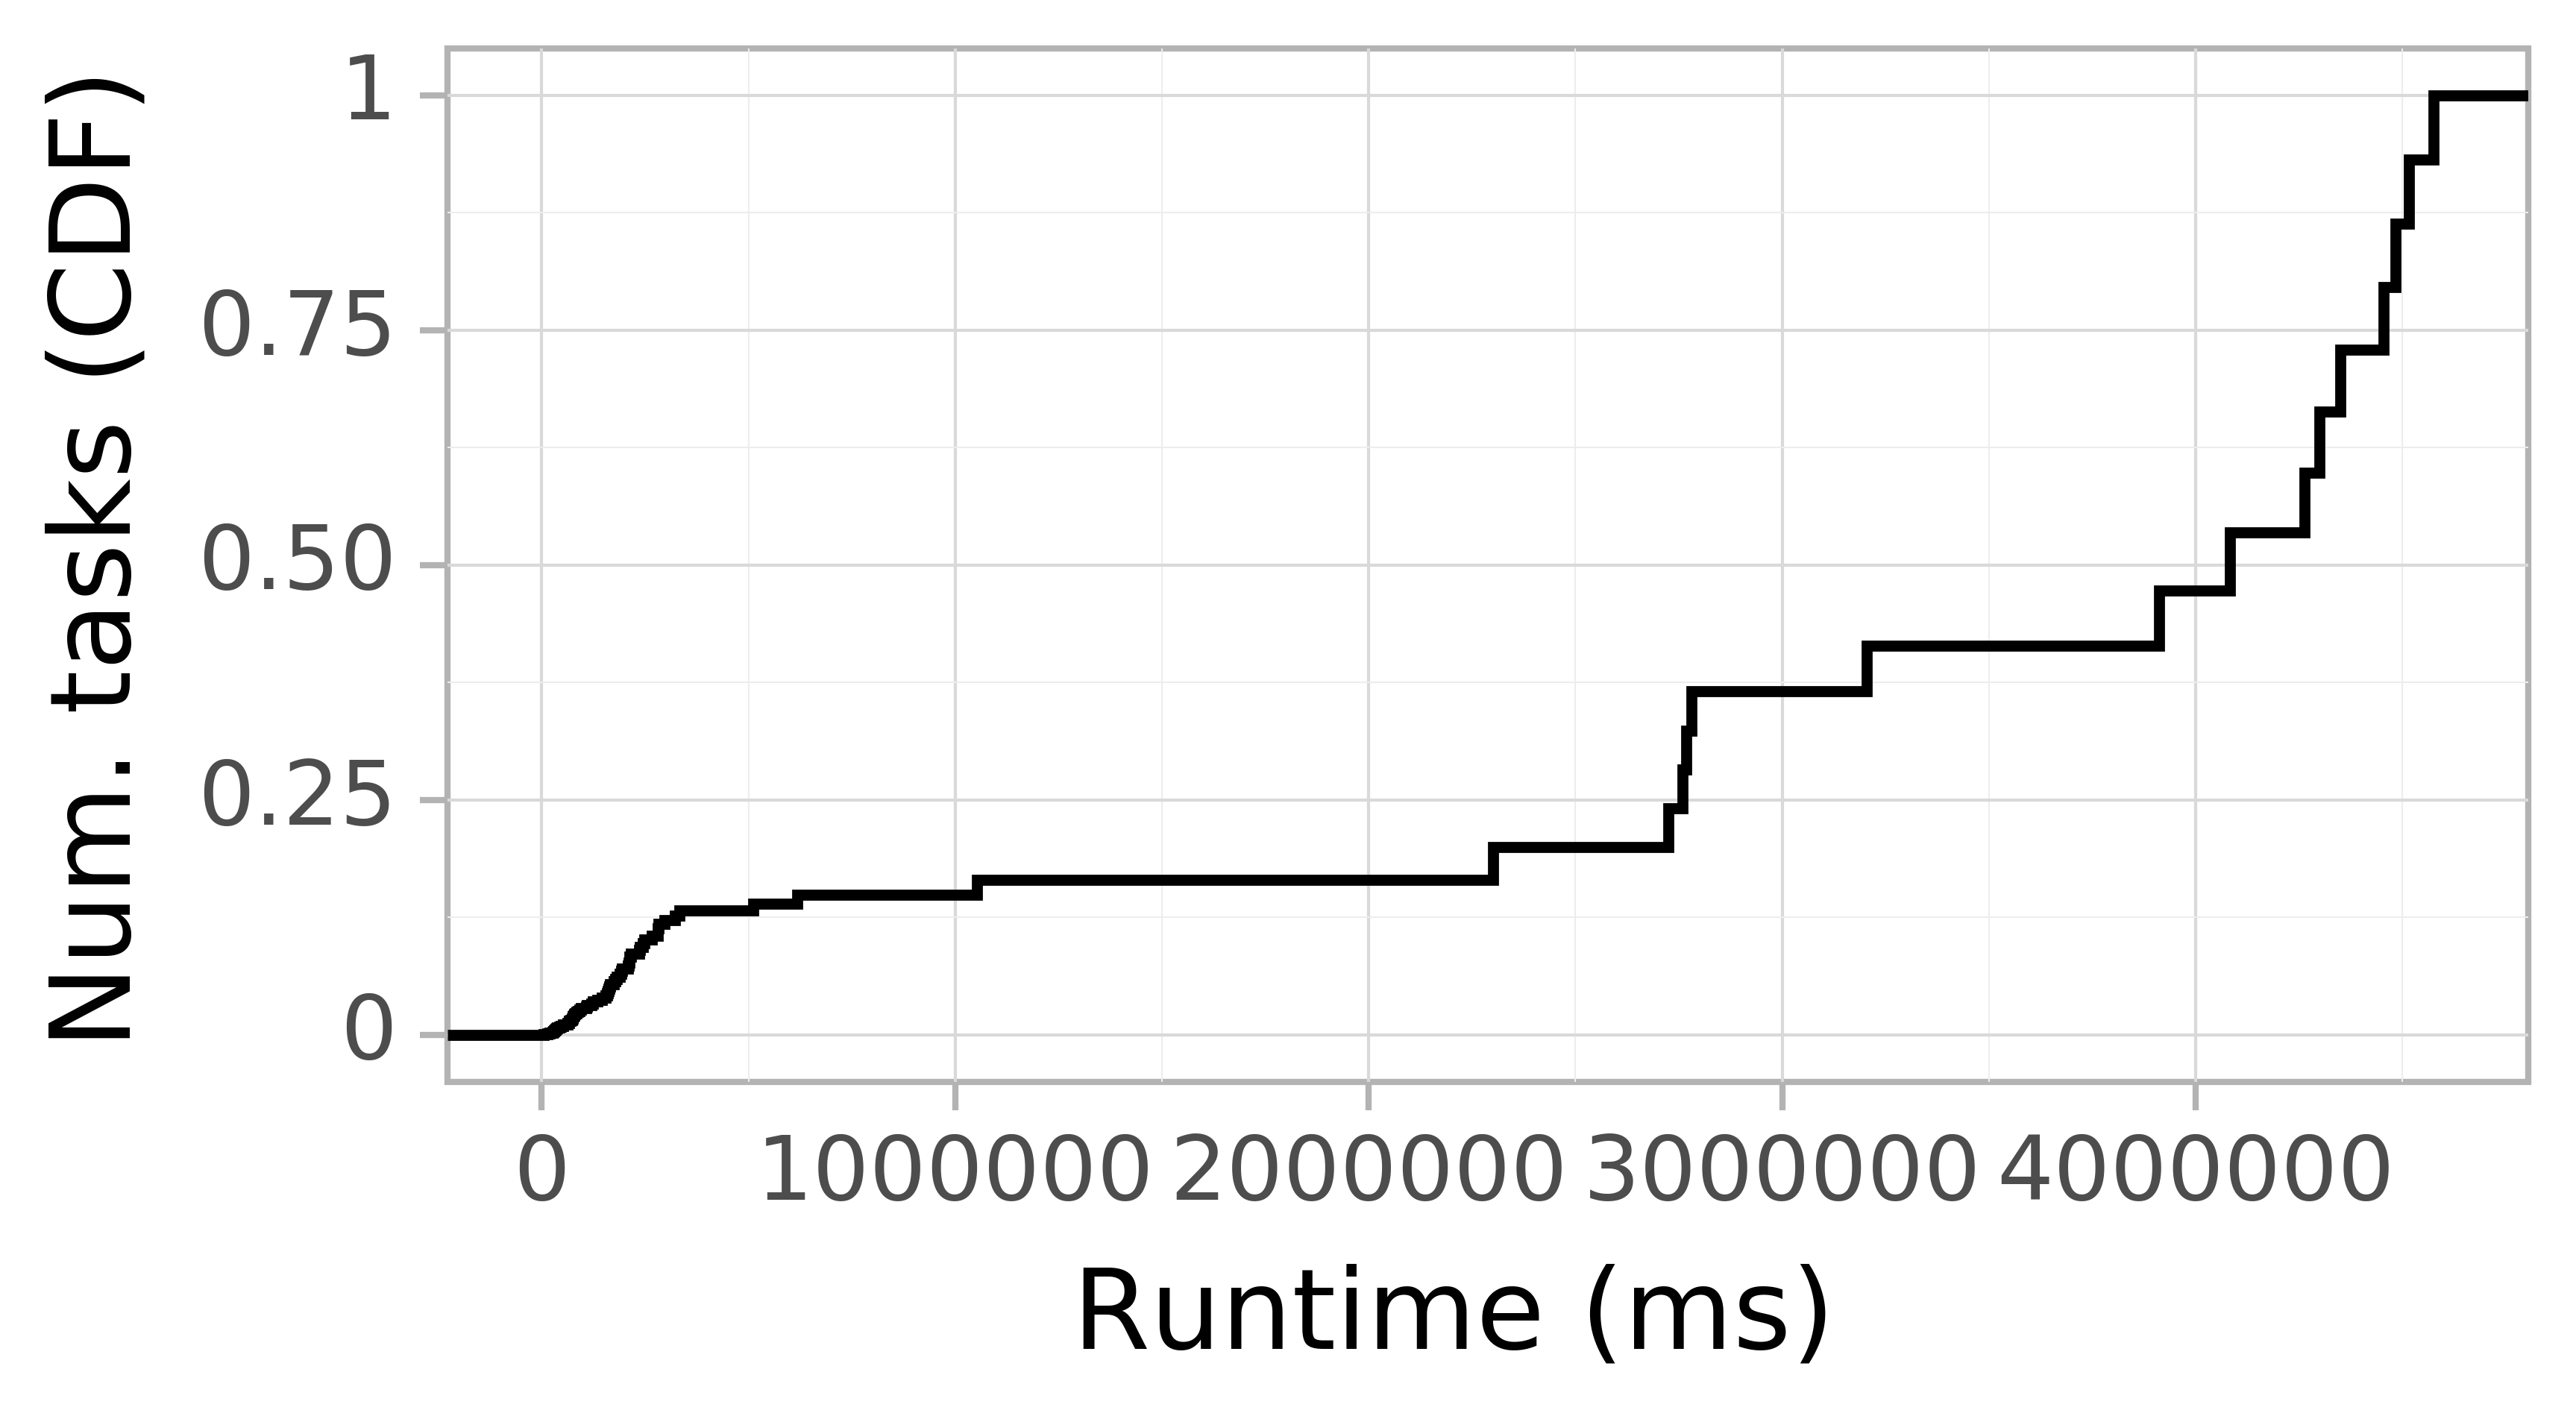 Task runtime CDF graph for the Pegasus_P5 trace.